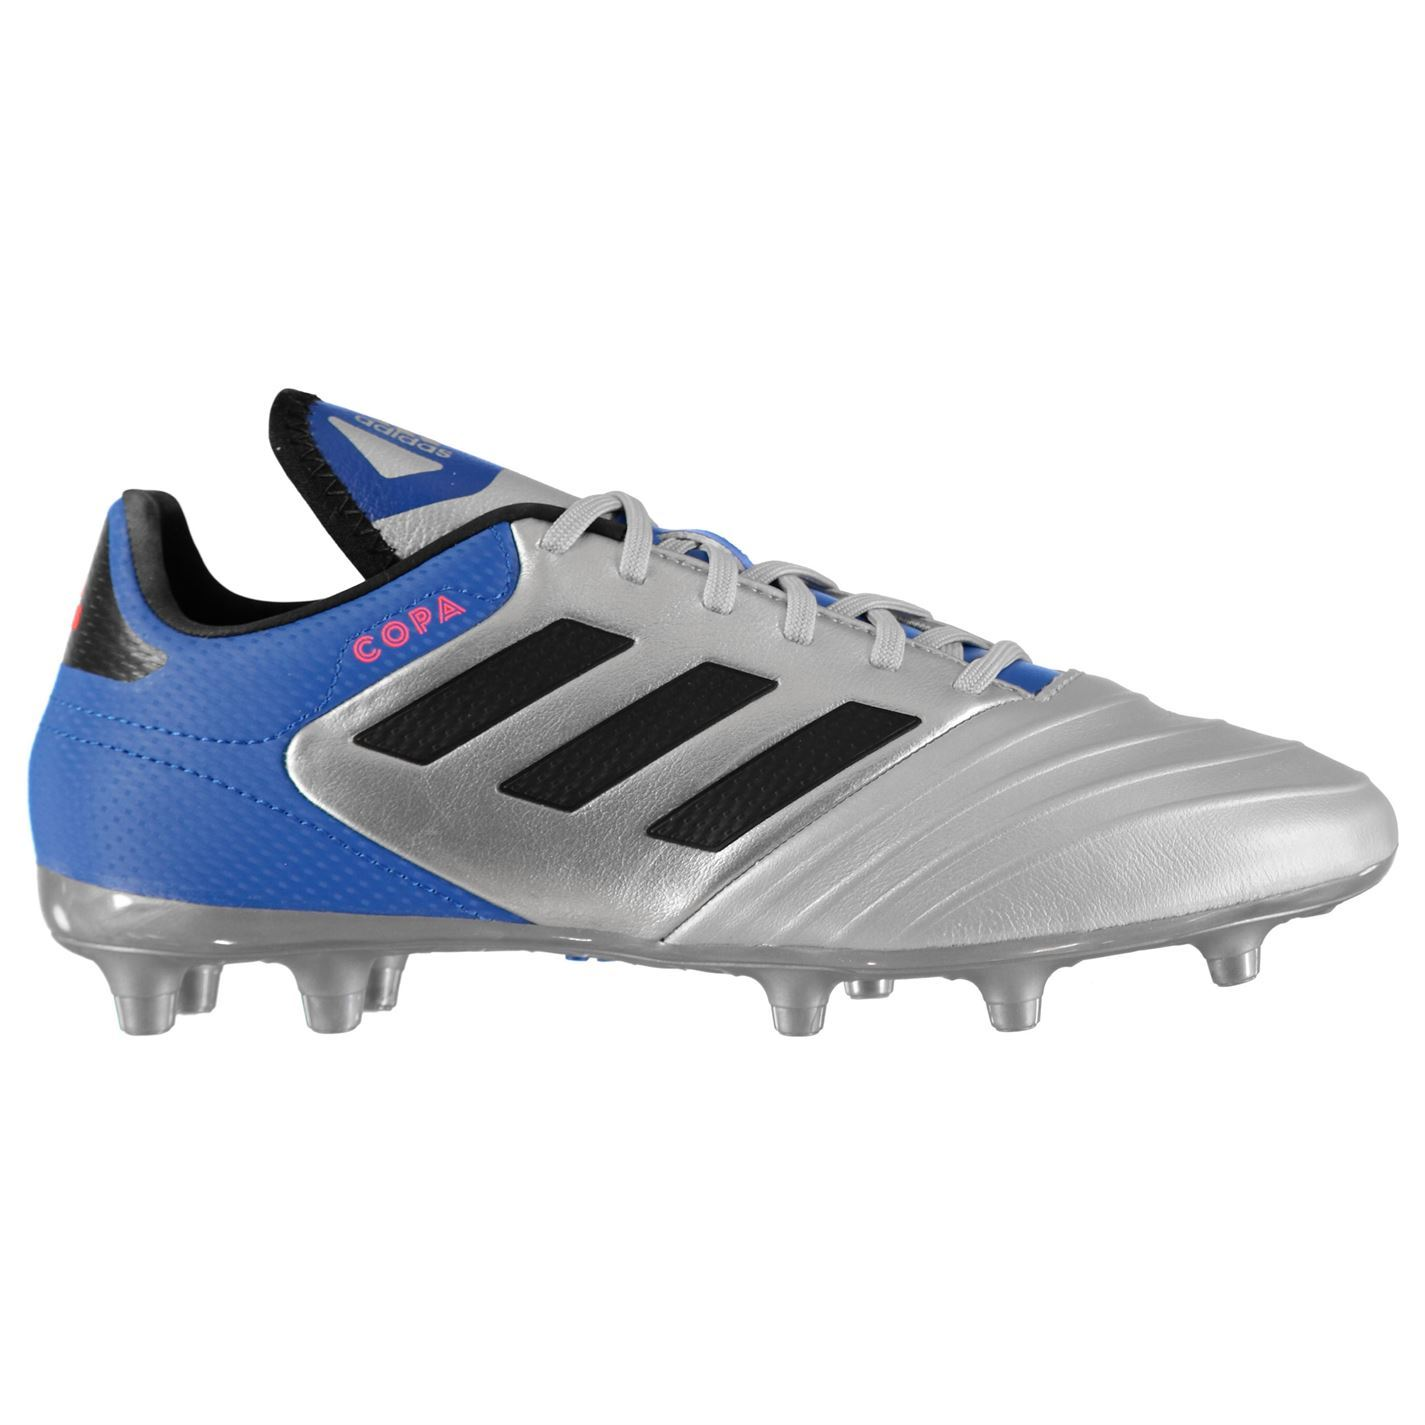 4243e5fada4 ... adidas Copa 18.3 FG Firm Ground Football Boots Mens Soccer Shoes Cleats